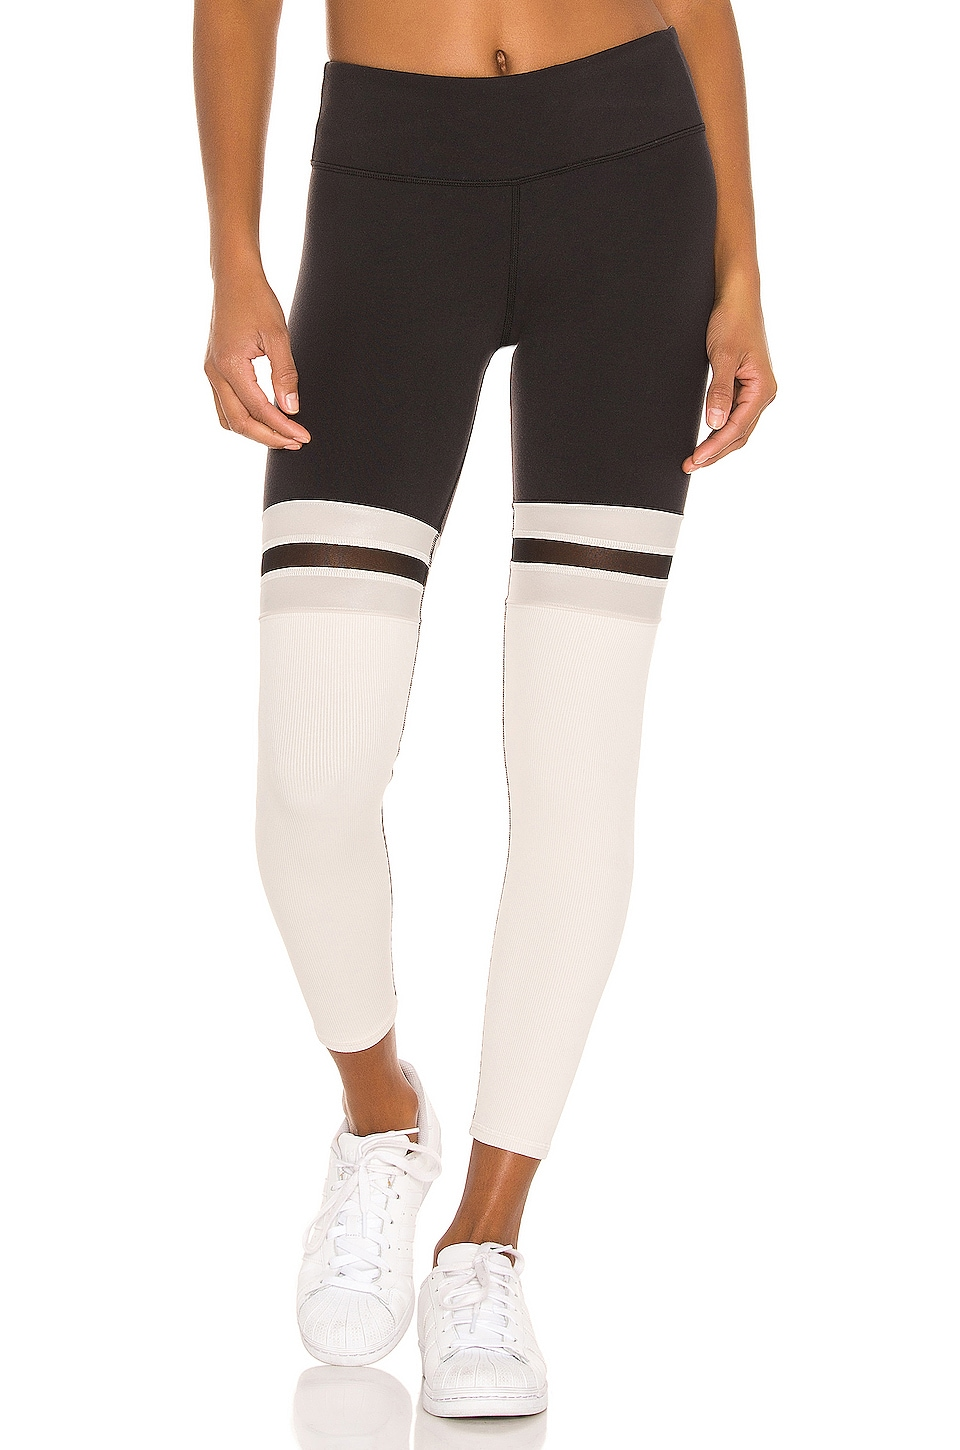 alo 7/8 Player Legging in Black & Bone